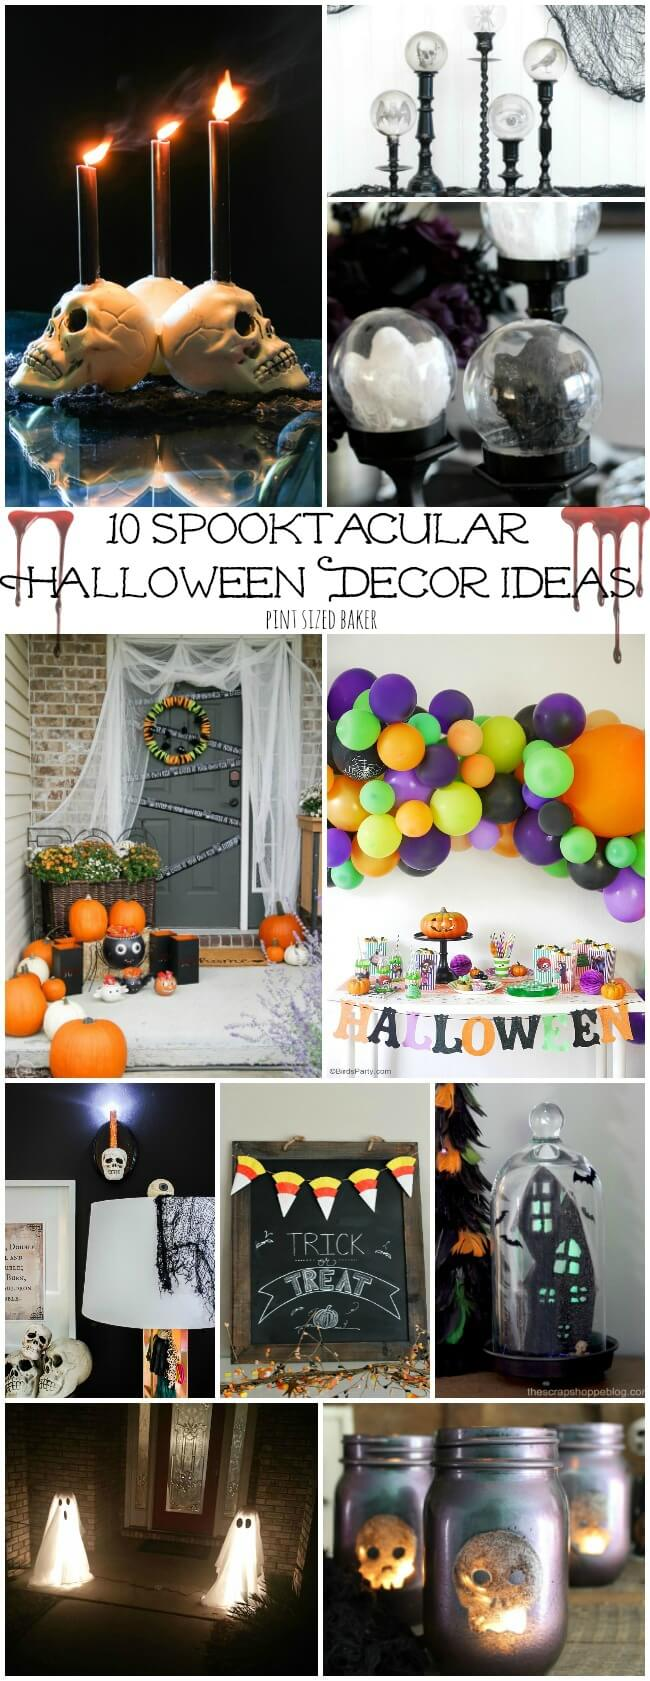 Spooktacular Halloween Decor Ideas Pint Sized Baker